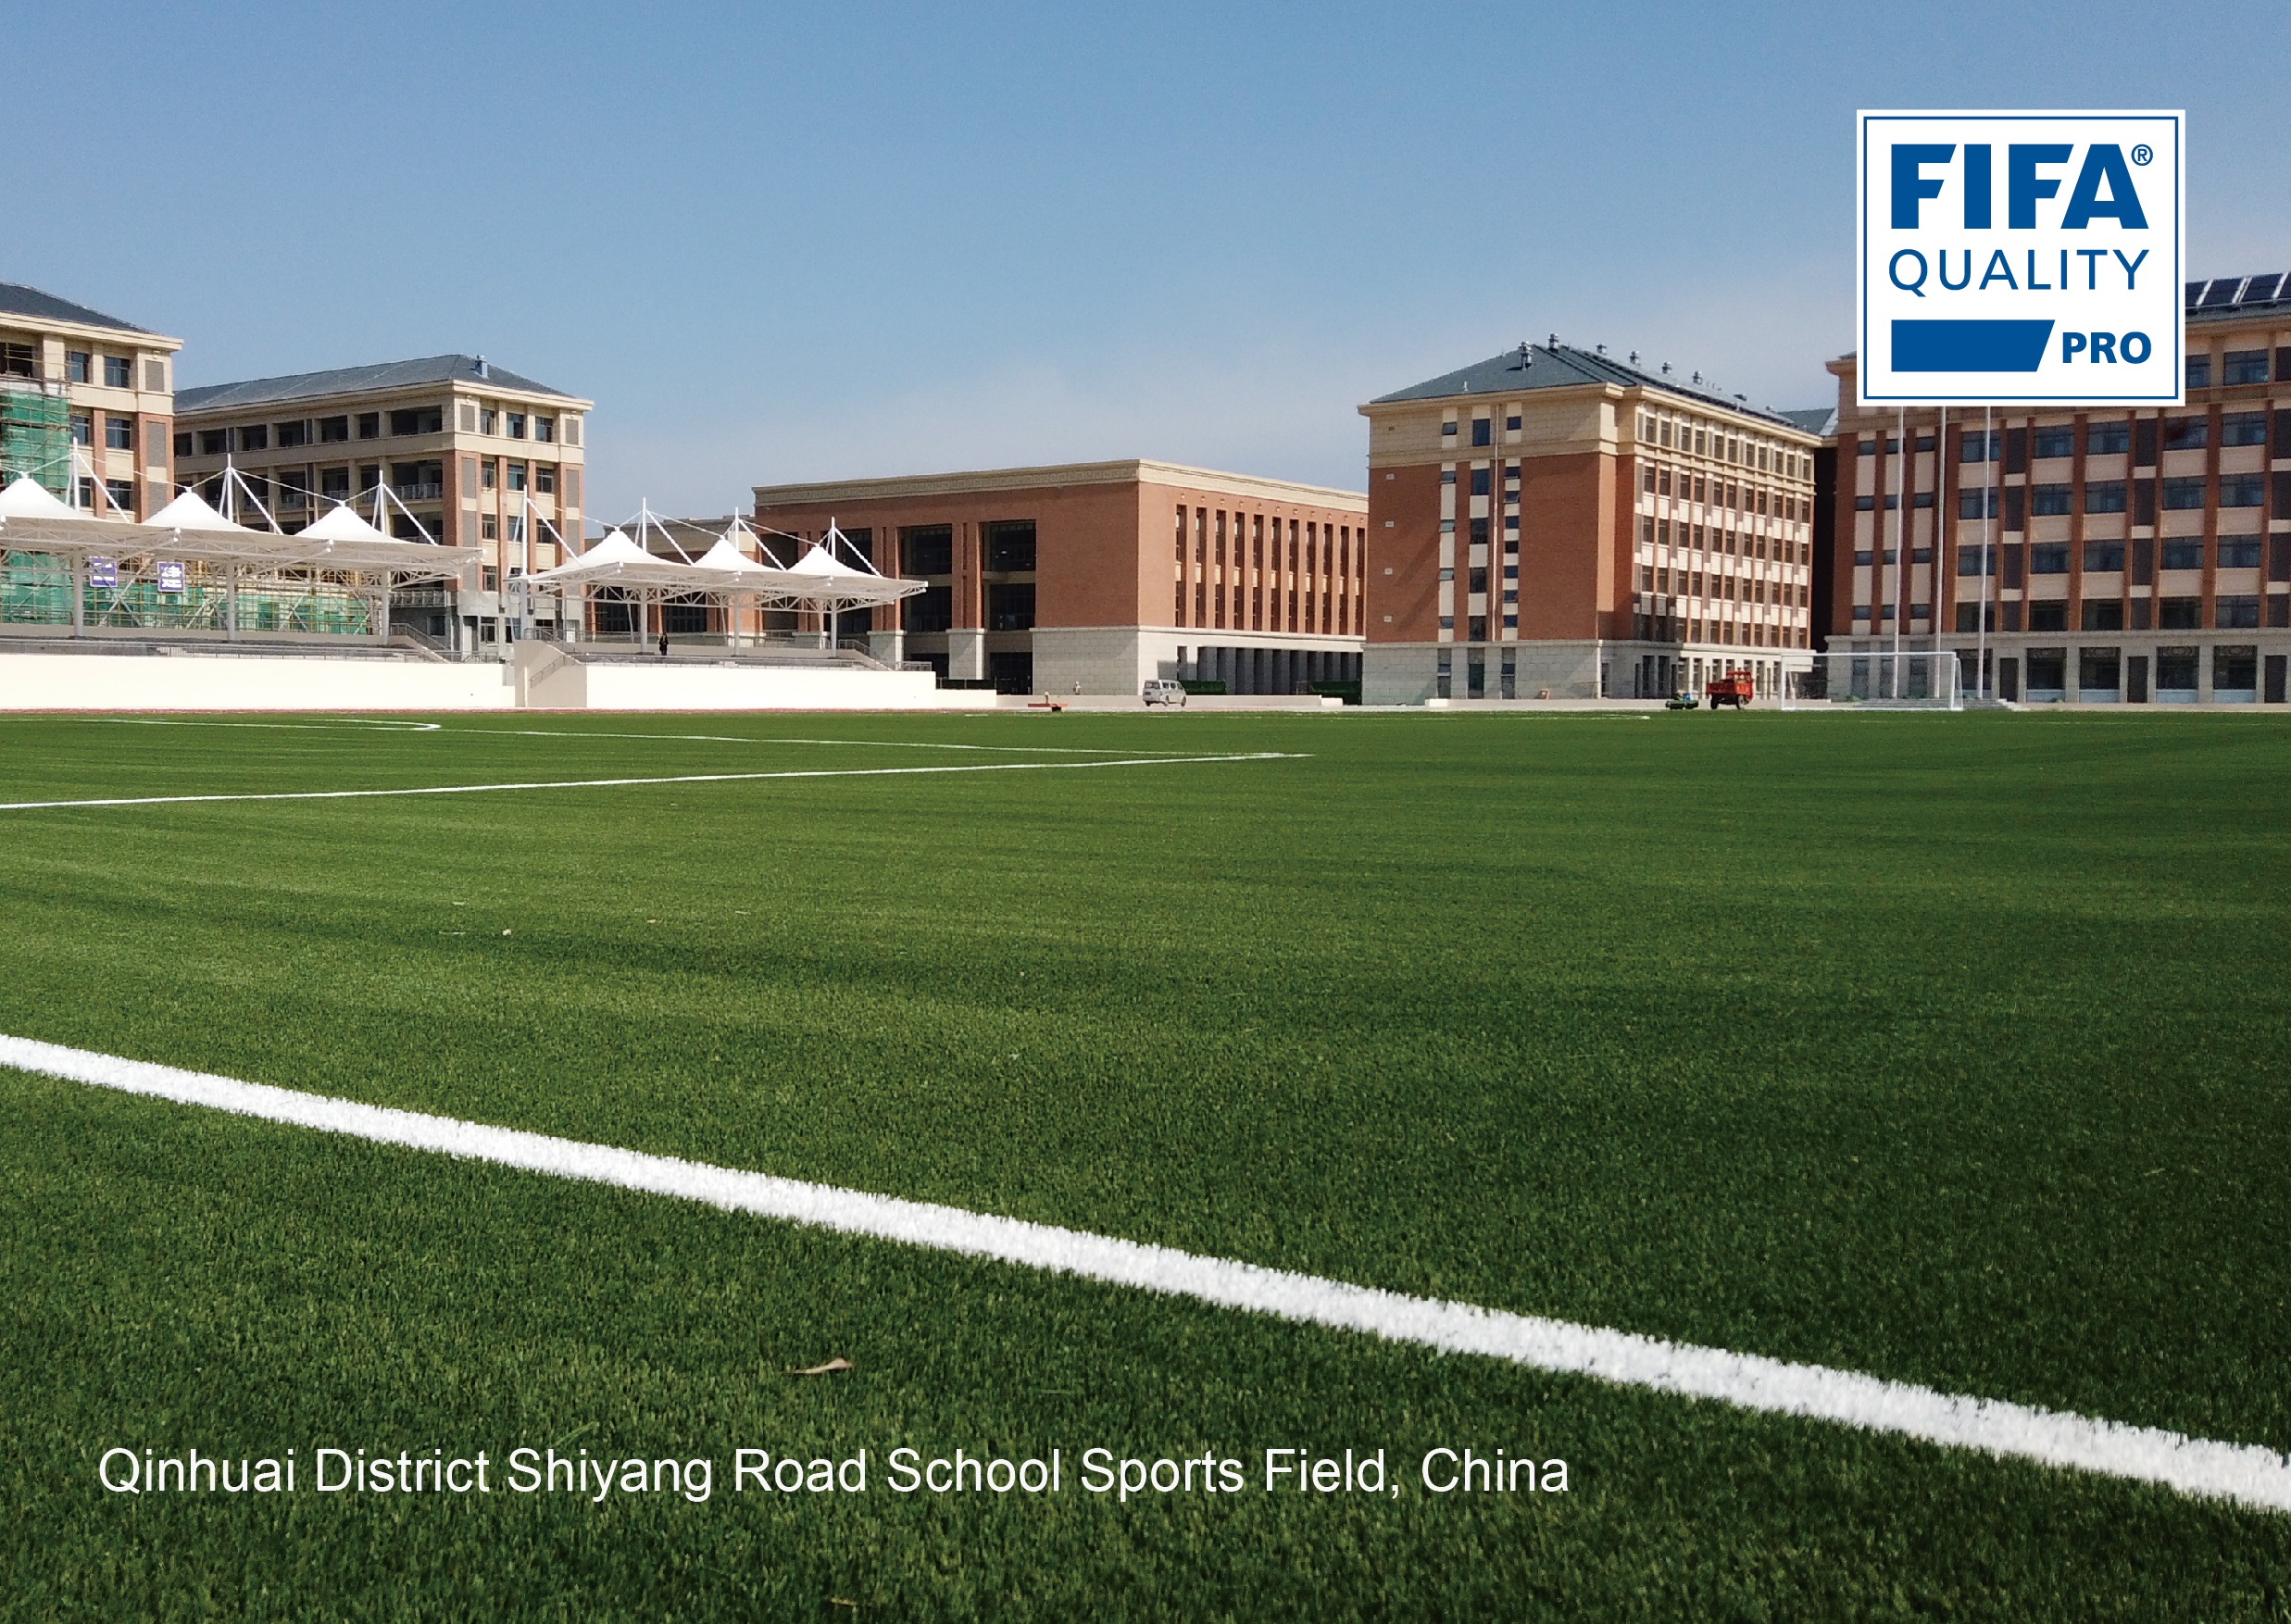 Qinhuai District Shiyang Road School Sports Field, China